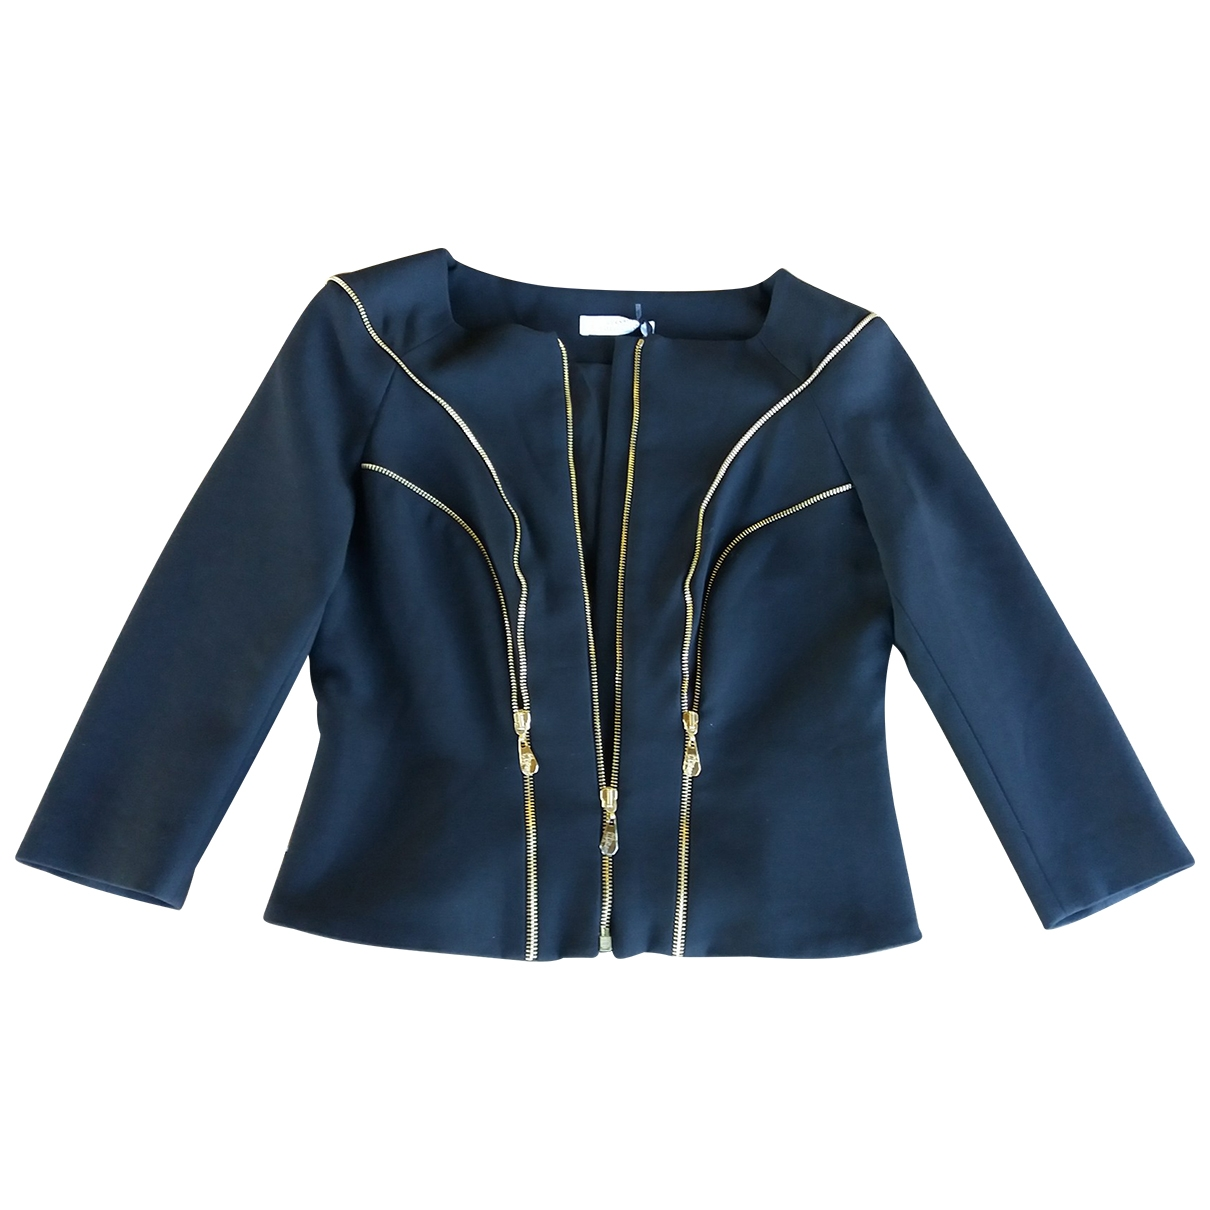 Versace \N Black jacket for Women 44 IT